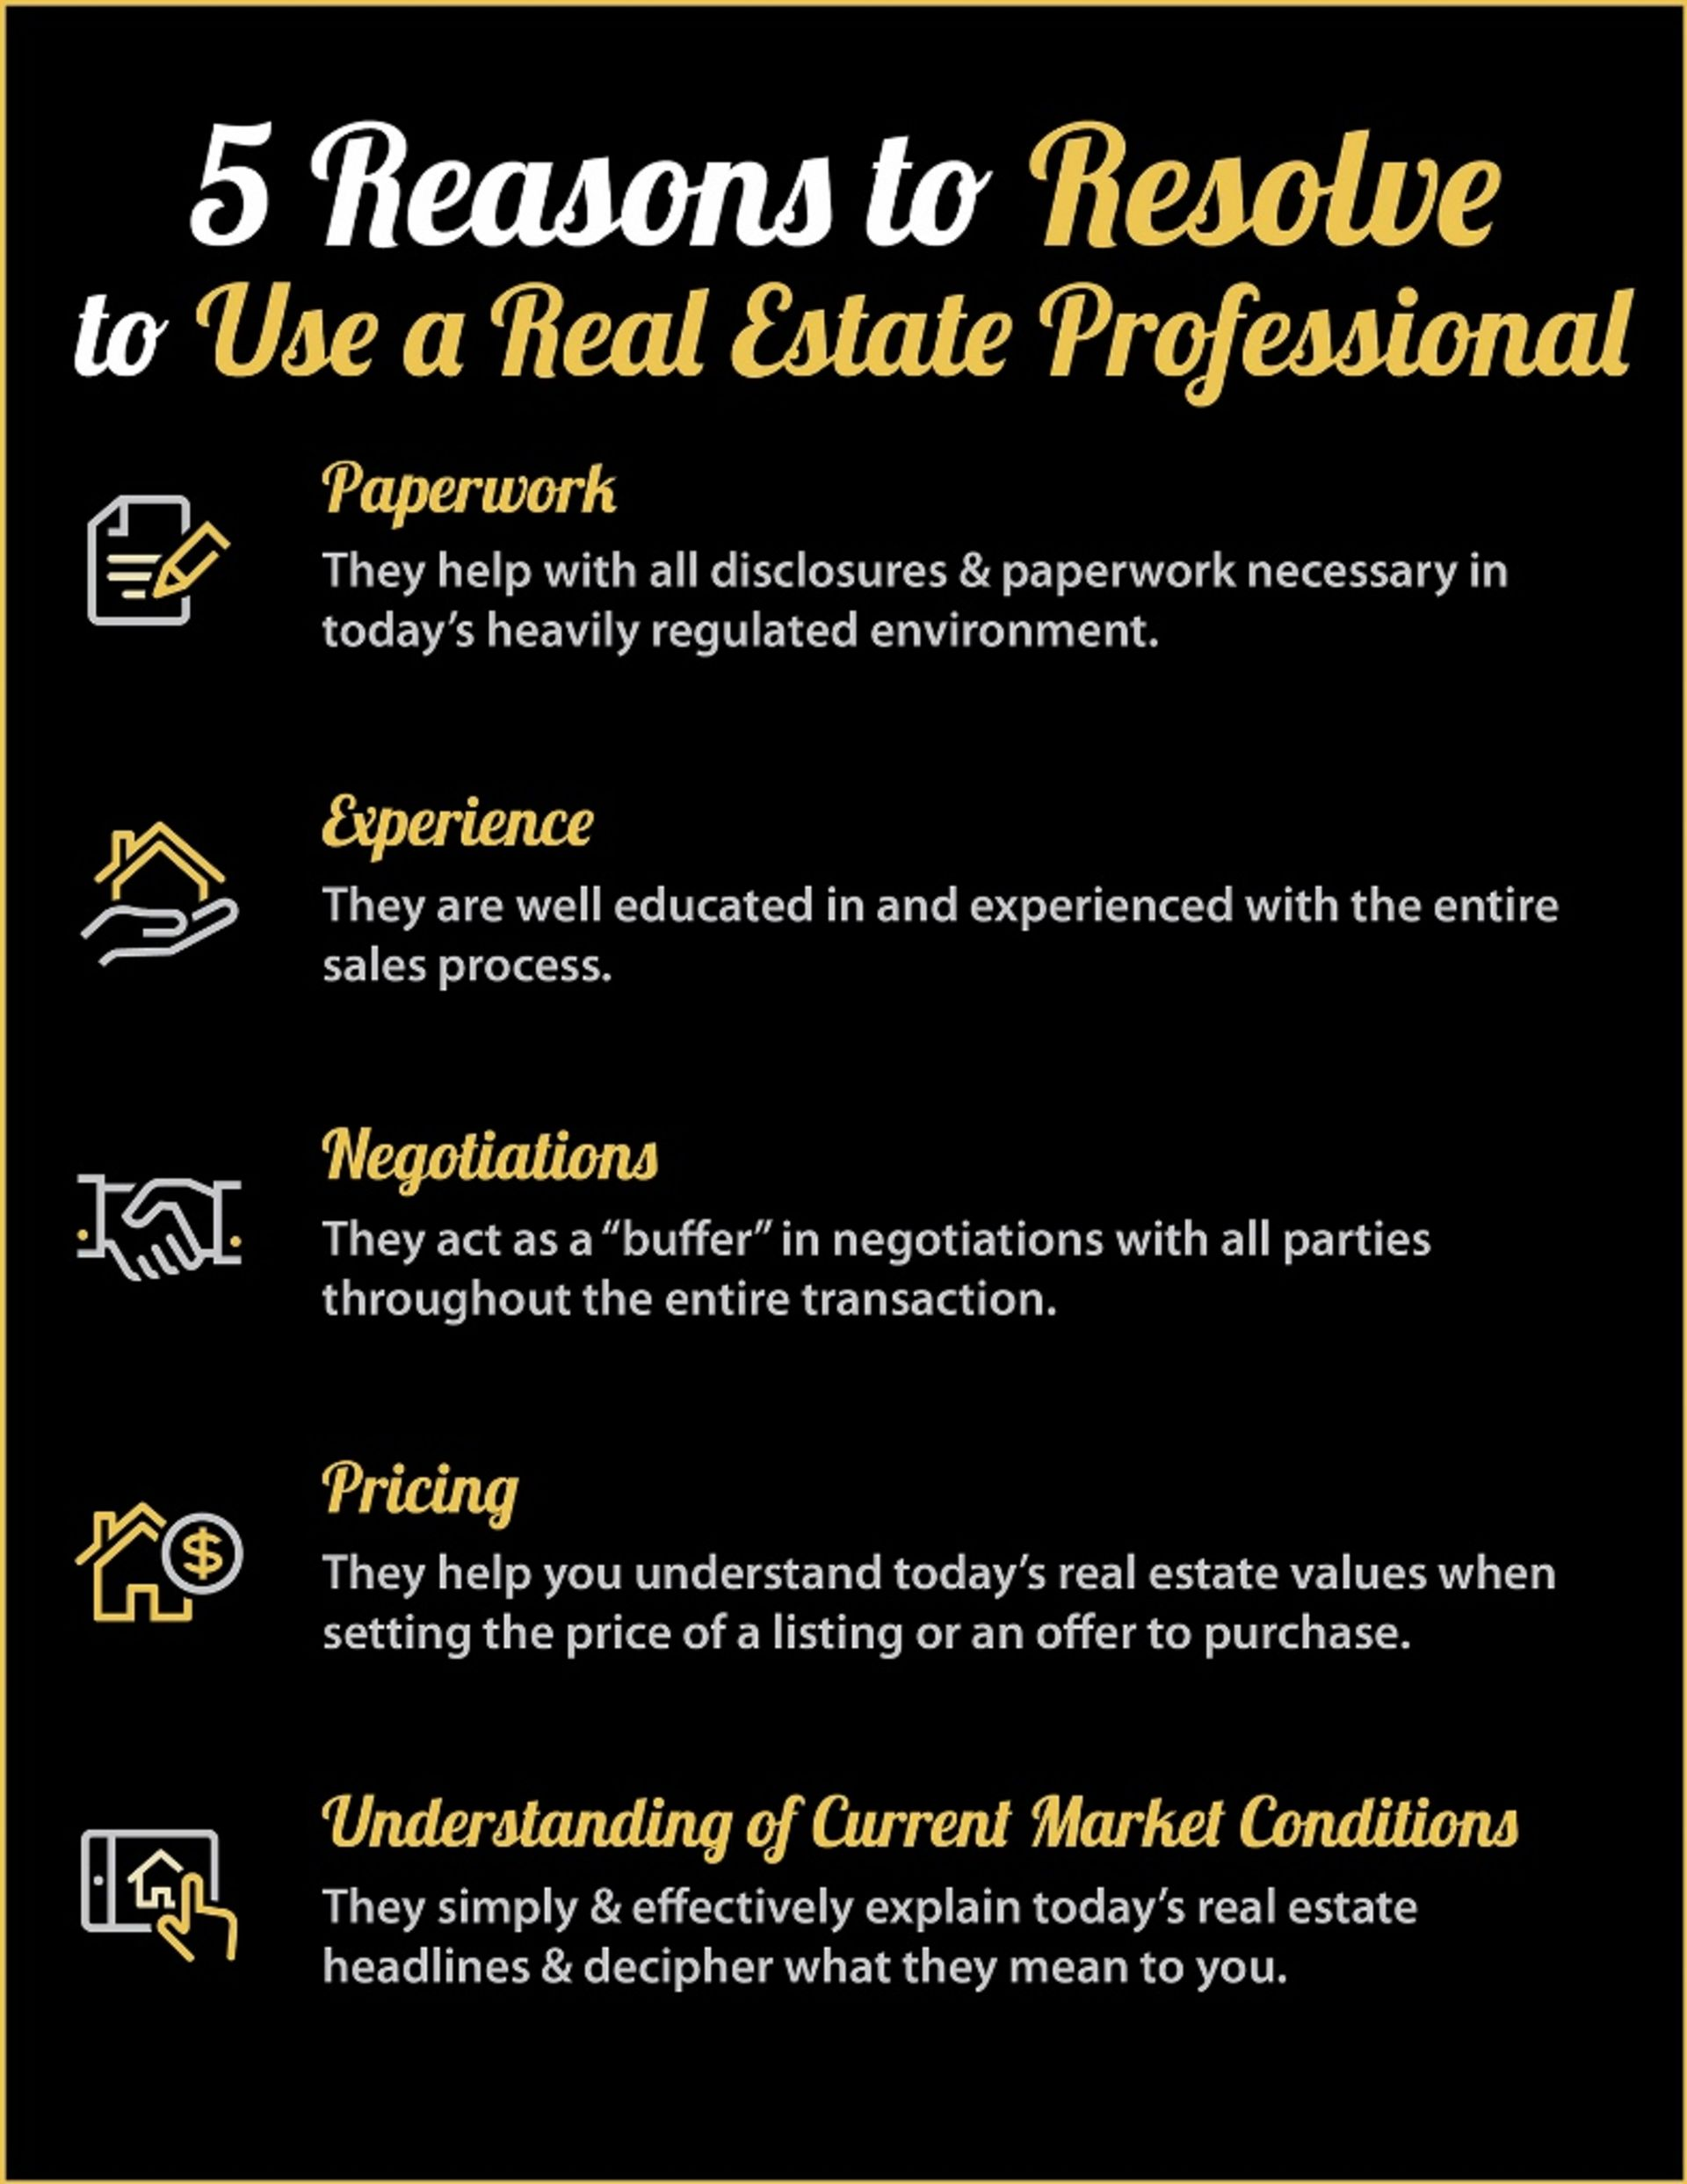 5 Reasons to Resolve to use a Real Estate Professional